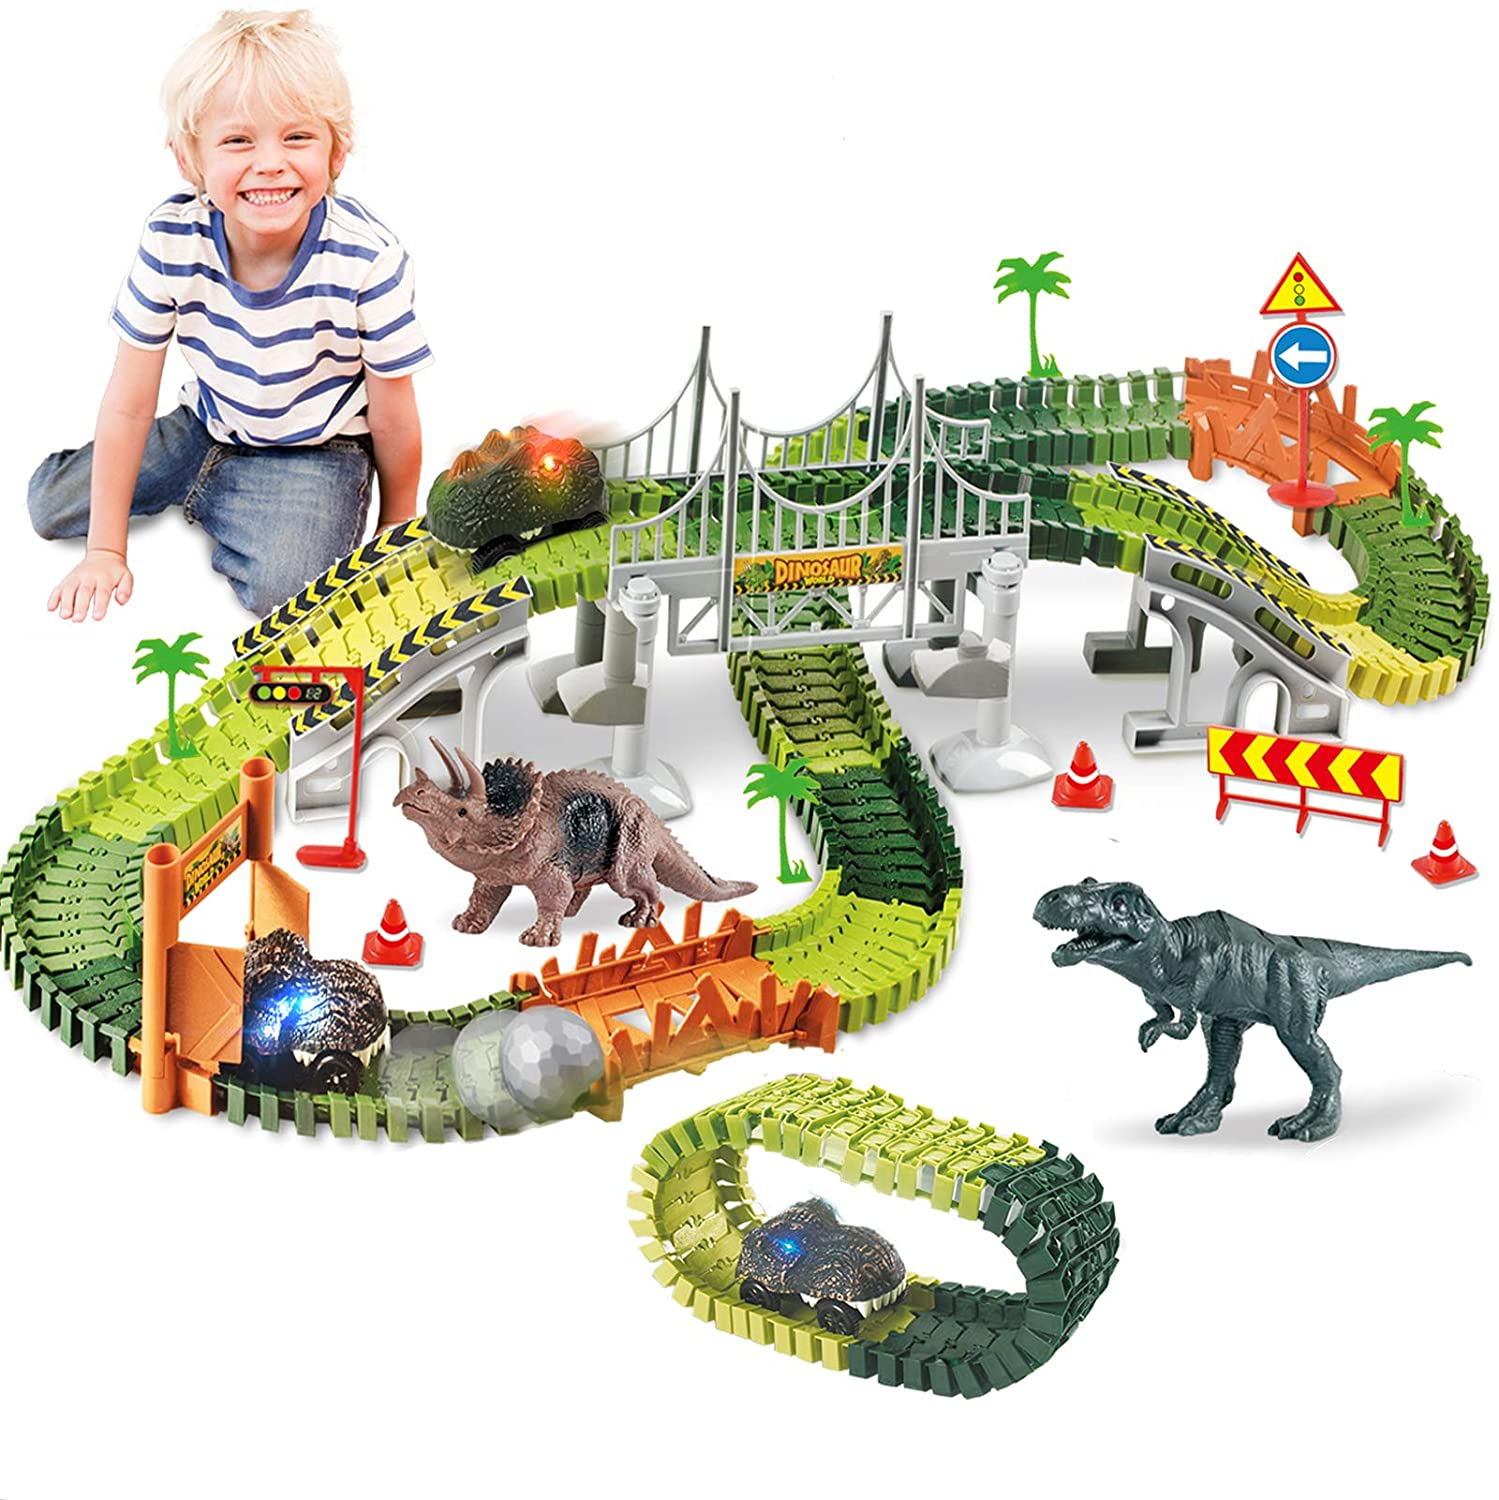 HOMOFY Dinasors Race Track Toys for 6-8 Years Old Kids 142Pcs Flexible Trains Tracks with 44pcs Accessories Create A Dinosaur World Dinasors Gift Toys for 4 5 6 7 8Year Old Boys and Girls